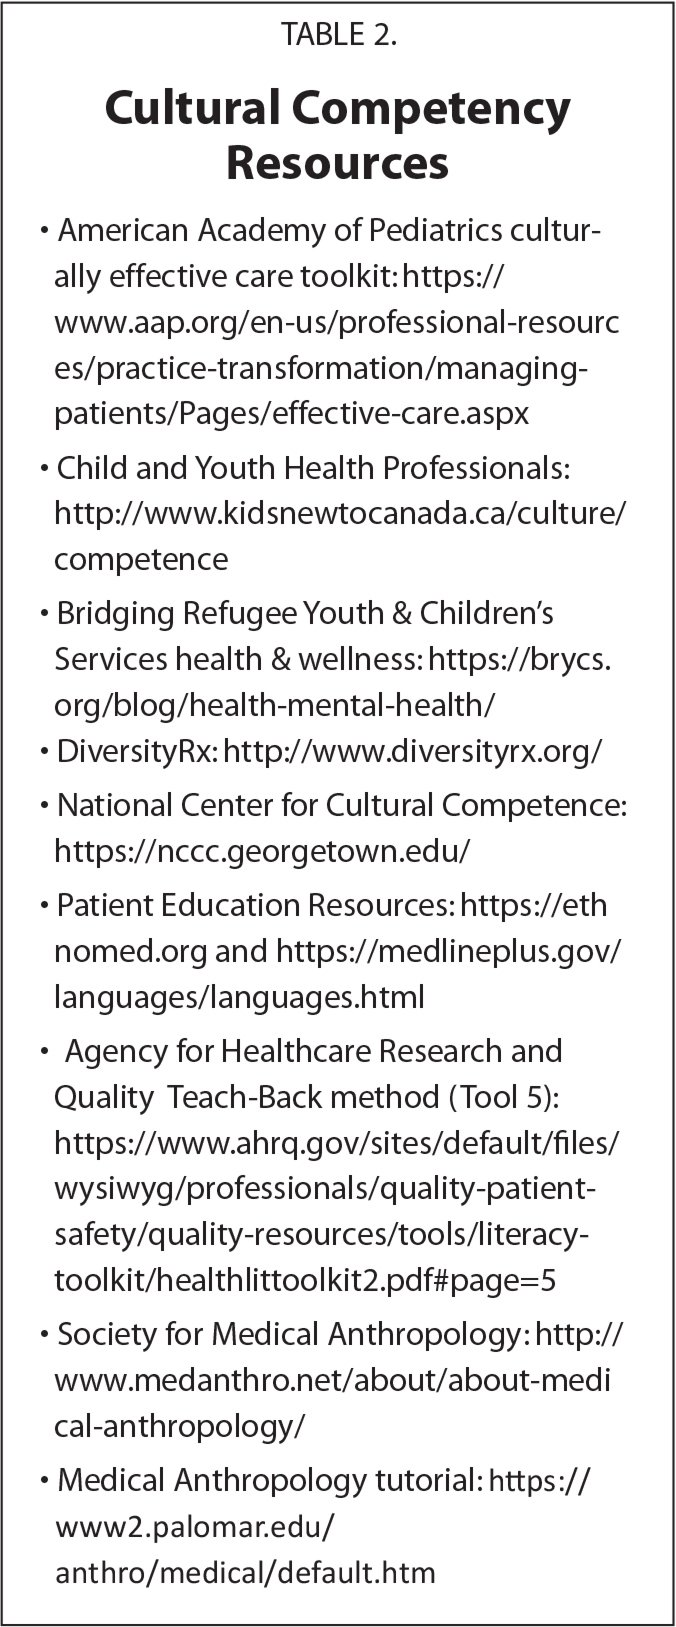 Cultural Competency Resources